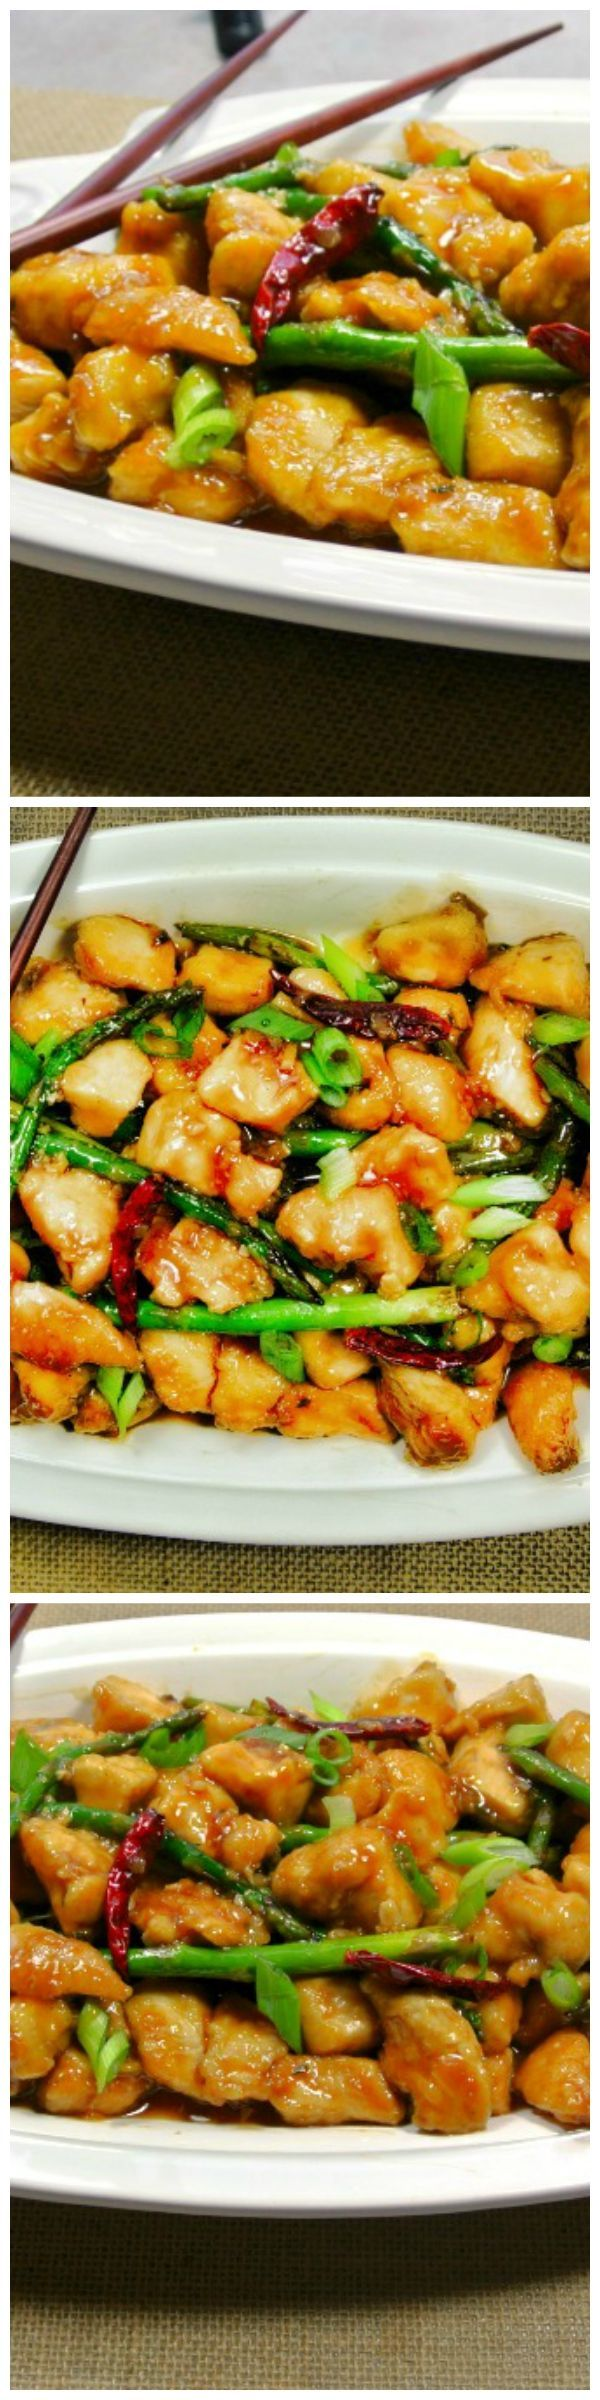 General Tso's Chicken - Try this easy Low Carb version of the family favorite General Tso's Chicken and you won't ever need to get take-out again.